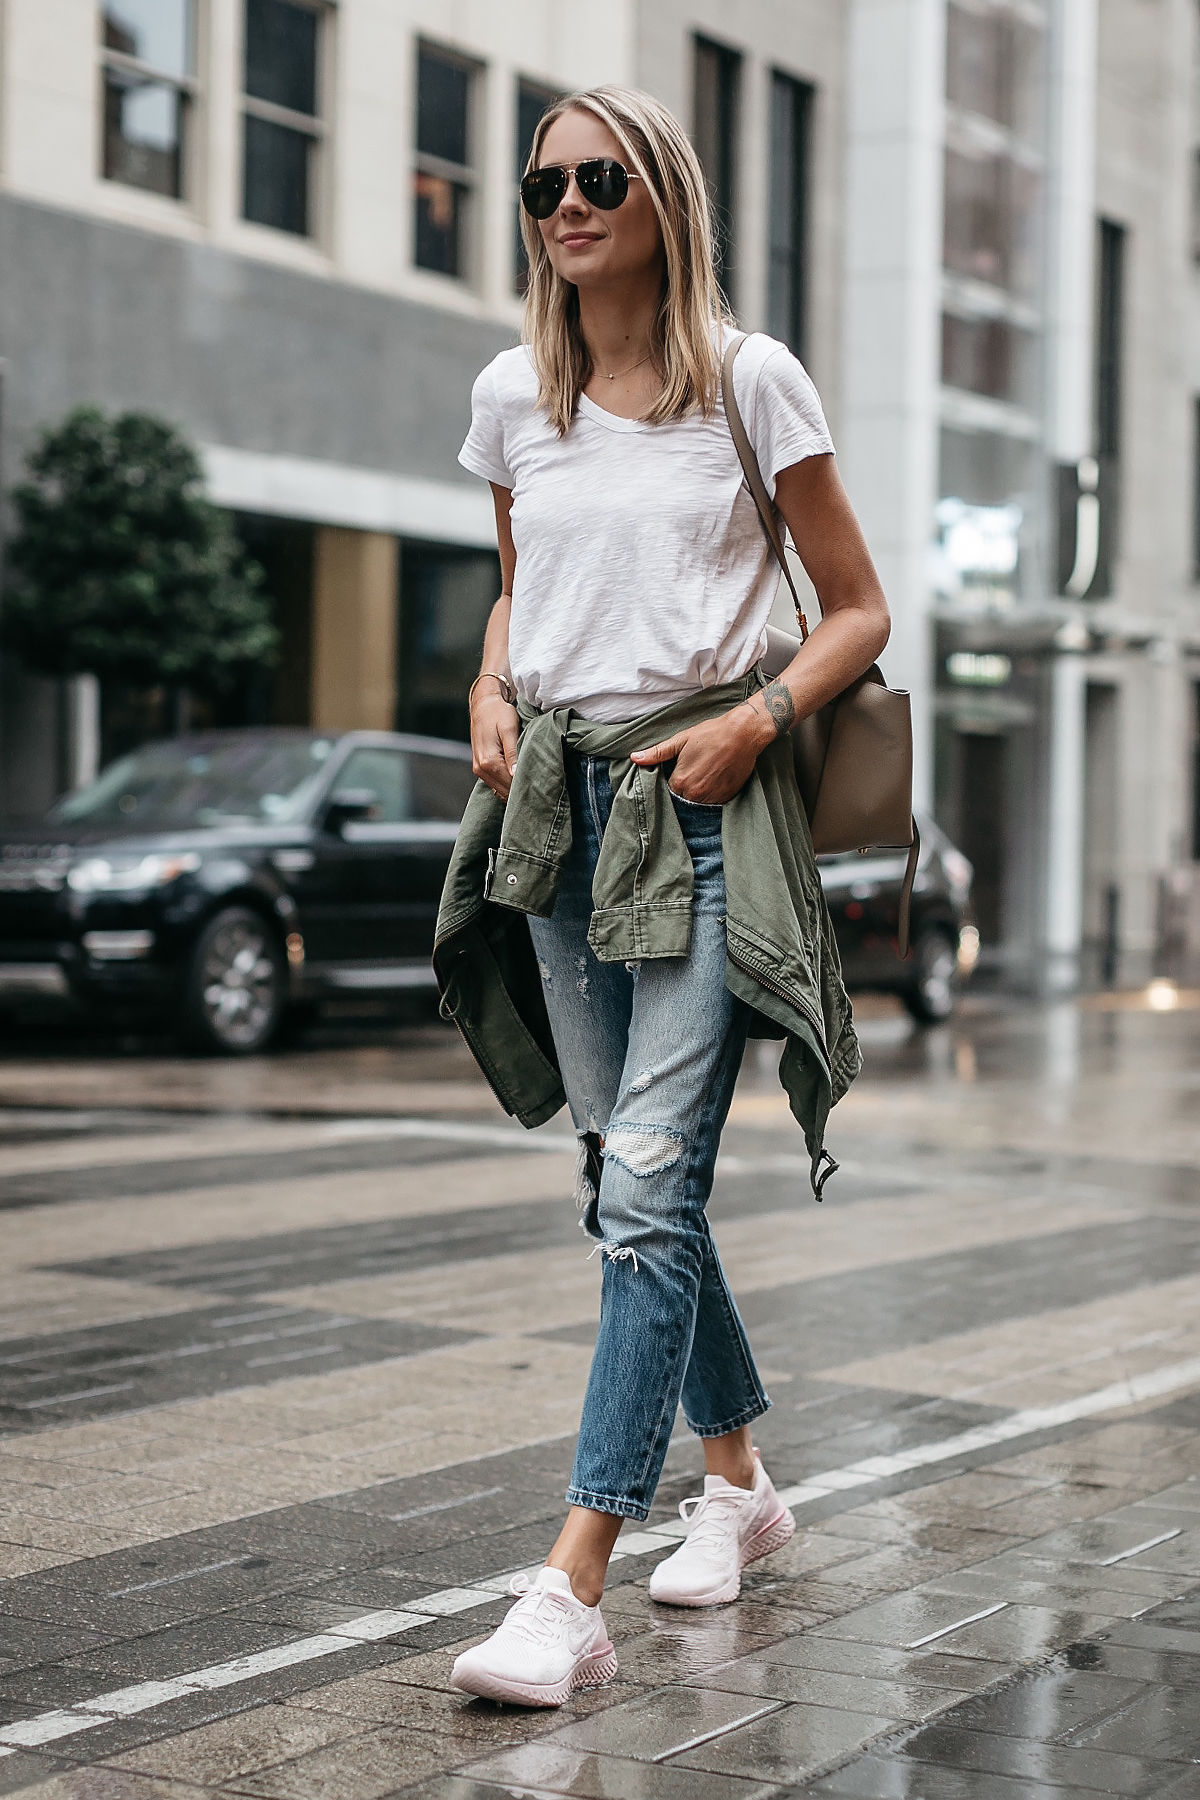 nike shoes street style